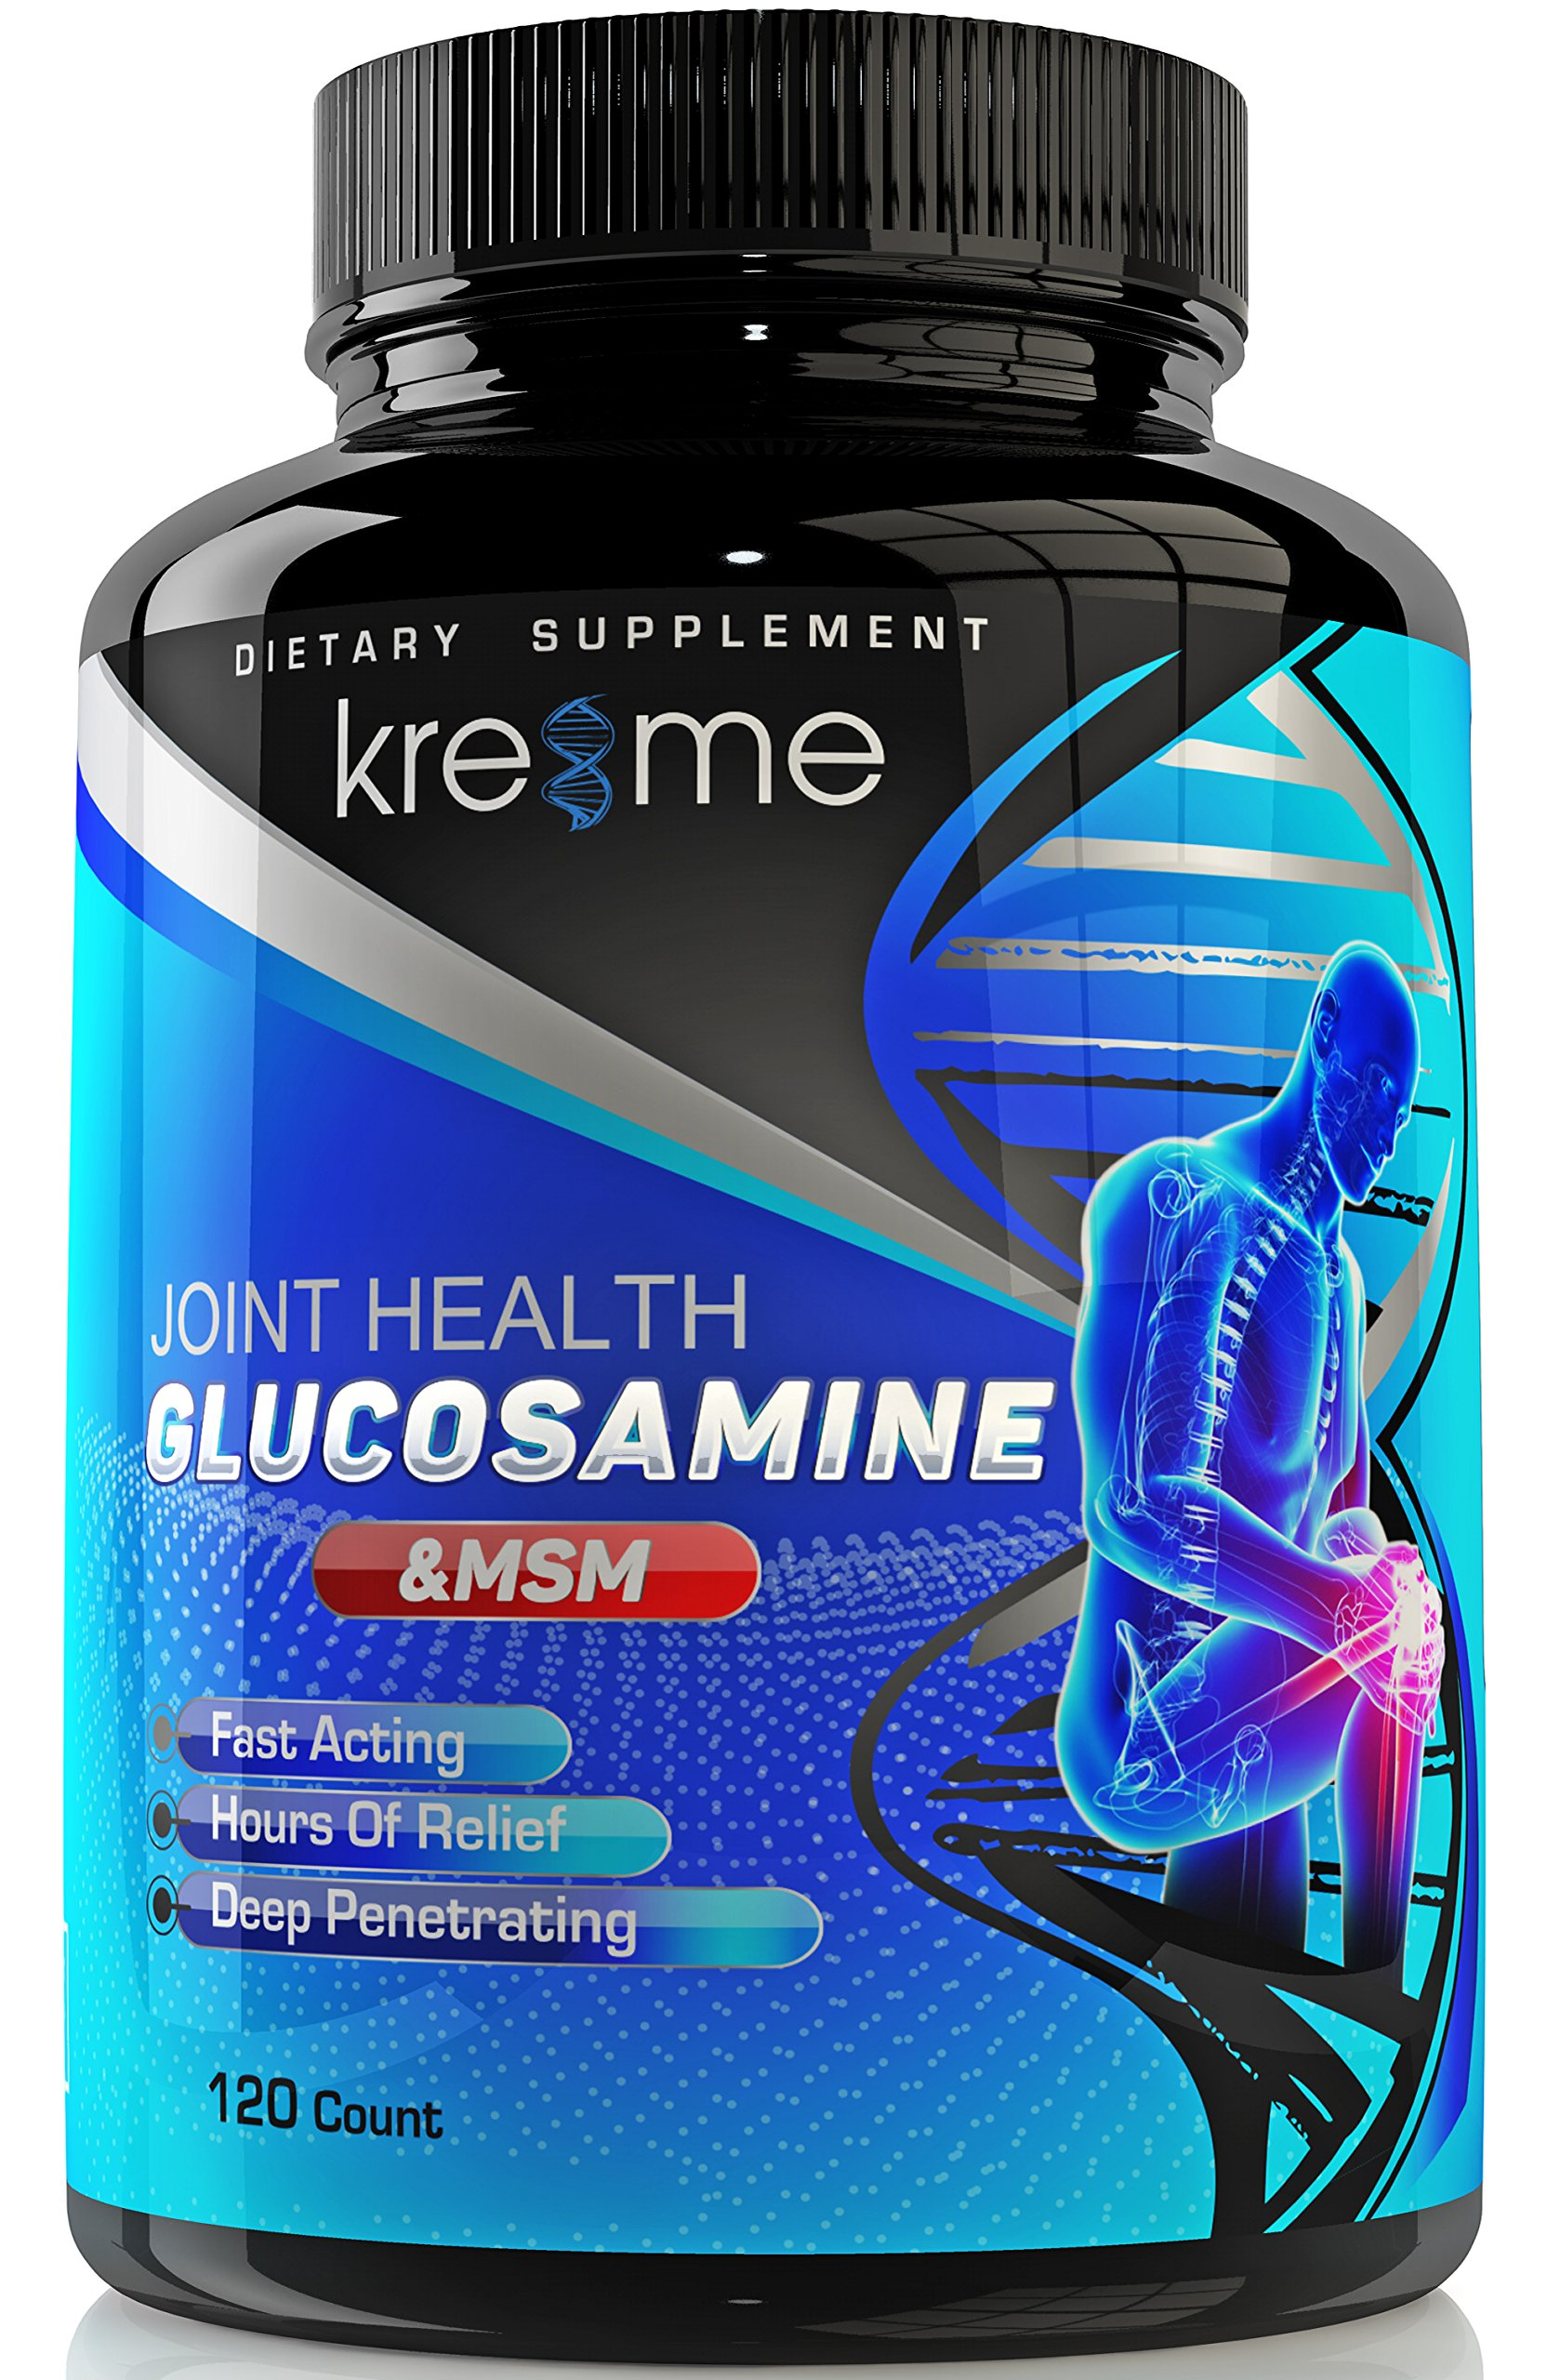 Cheap Extra Strength Glucosamine Find Kirkland Signature Hci 1500mg With Msm Get Quotations Kre8me Complex Chondroitin Hyaluronic Acid And Fruitex